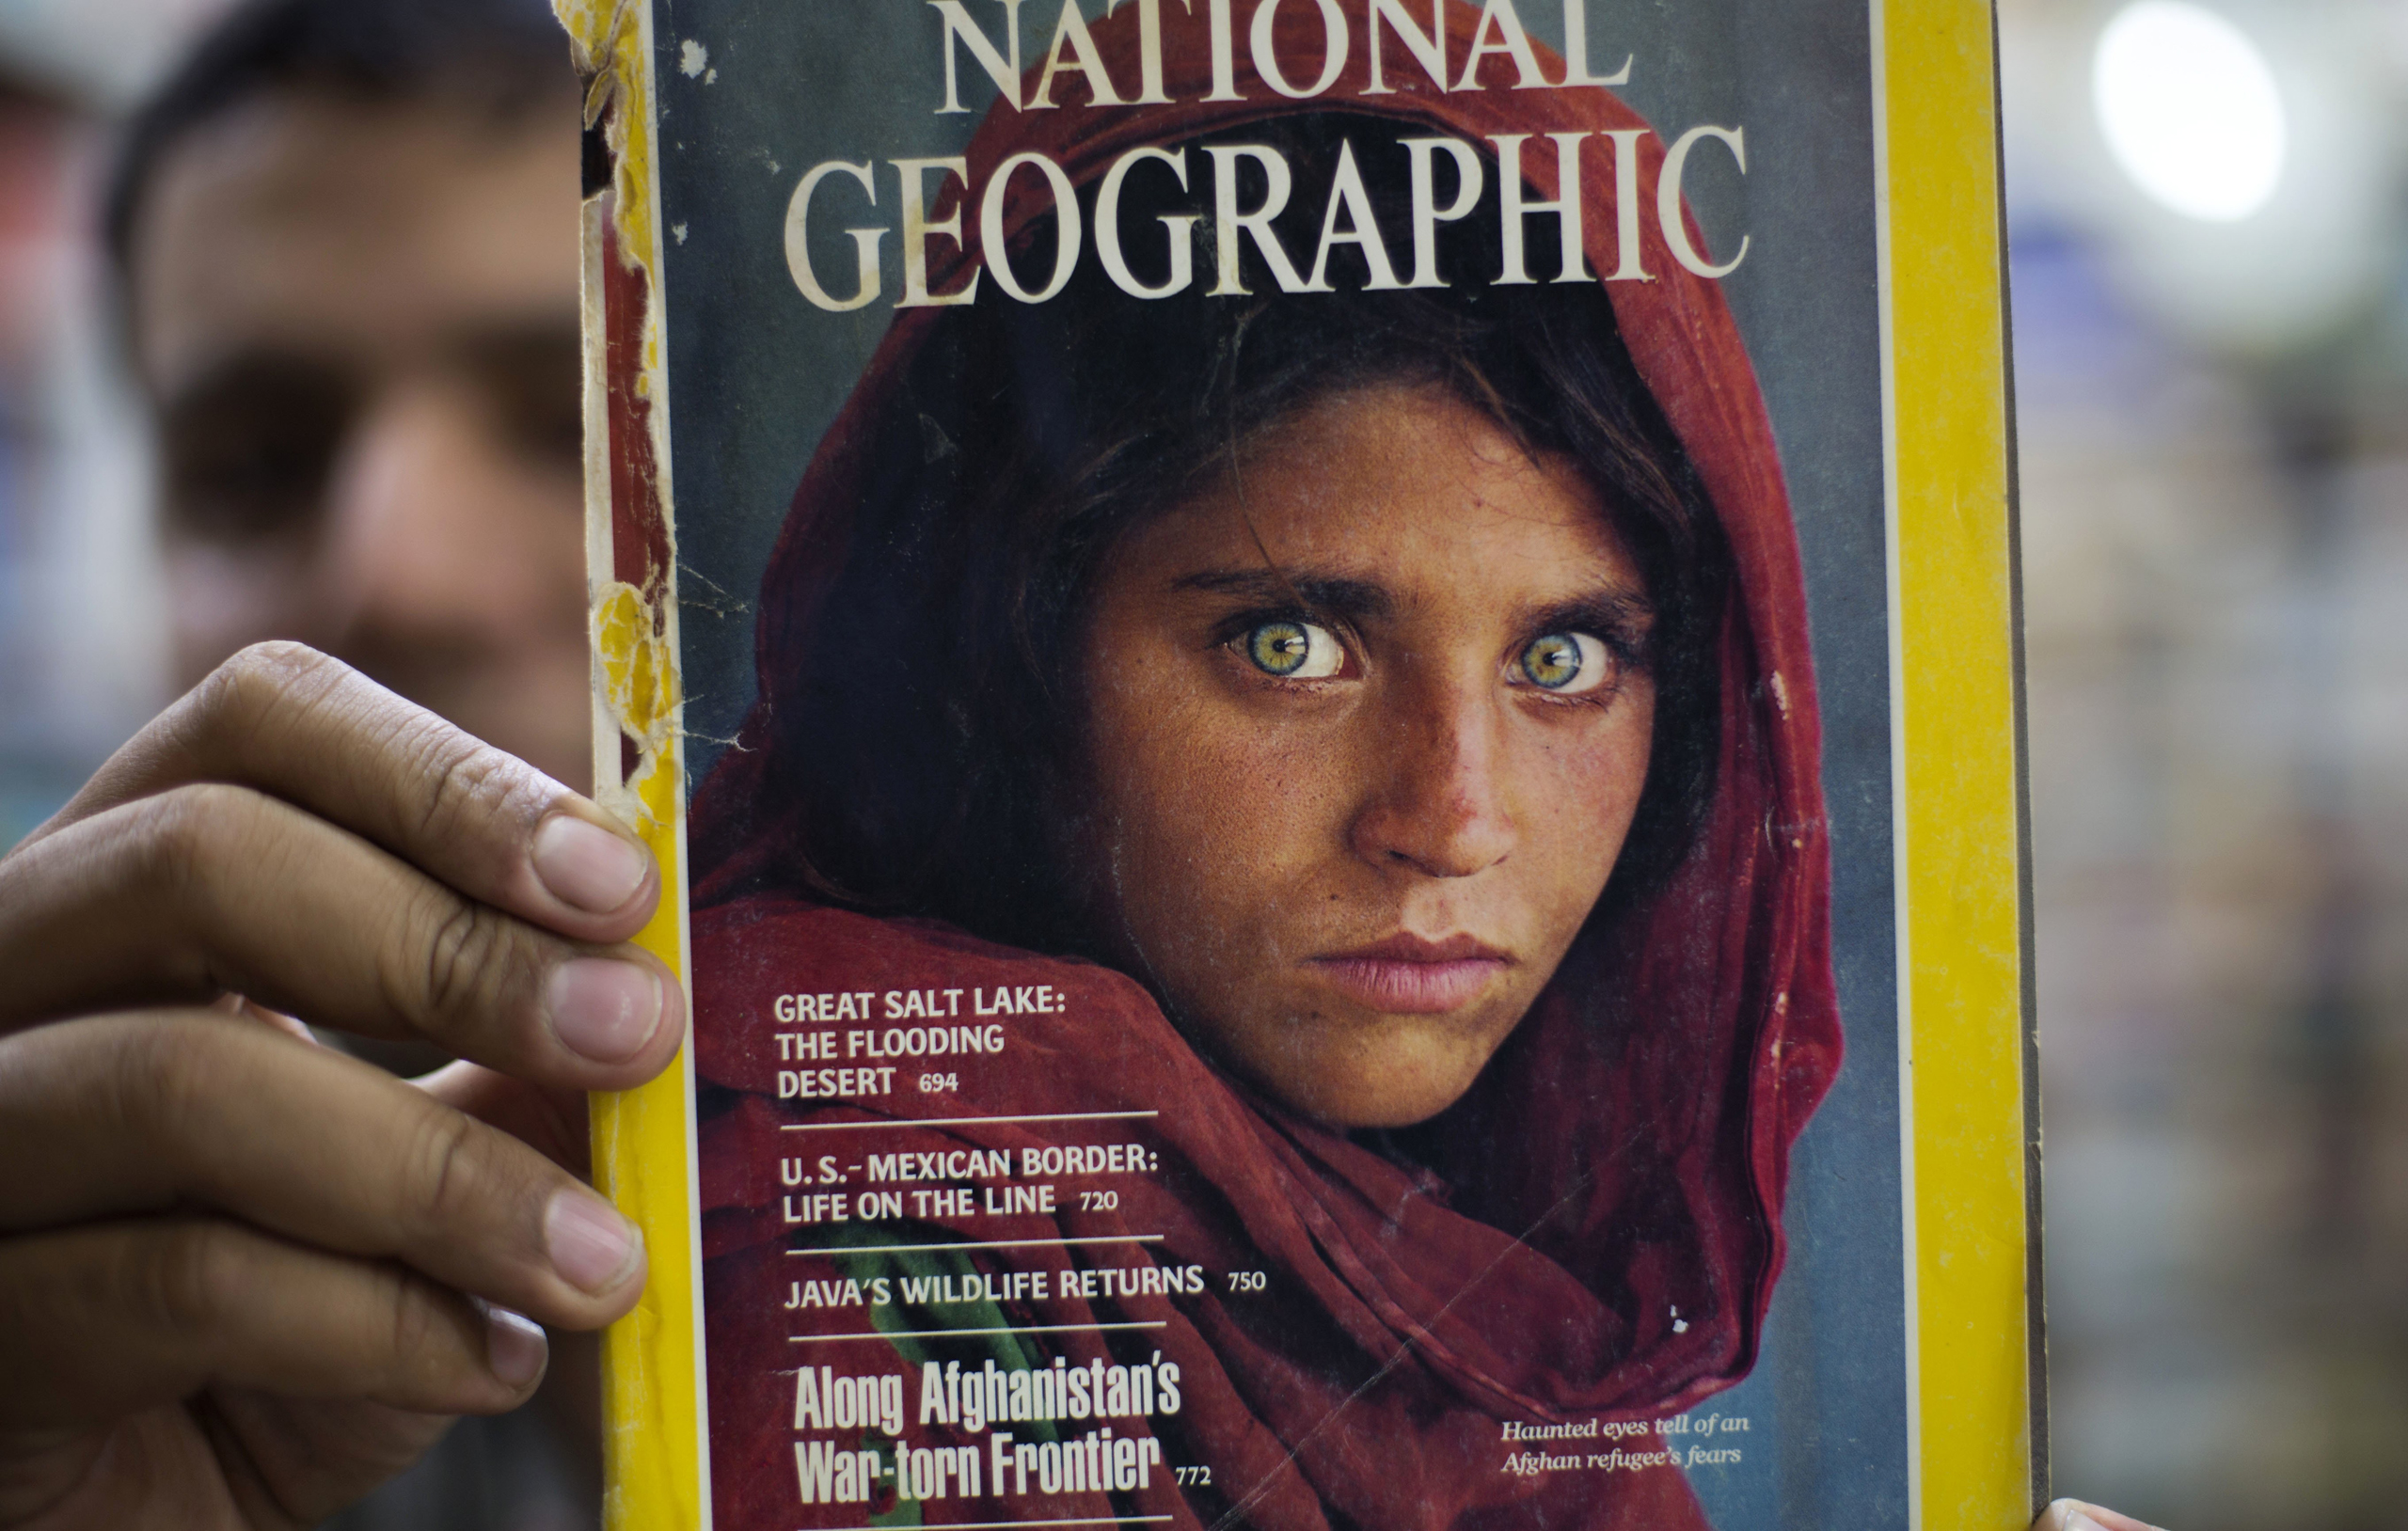 Pakistan's Inam Khan, owner of a book shop shows a copy of a magazine  with the photograph of Afghan refugee woman Sharbat Gulla, from his rare collection in Islamabad, Pakistan, on, Oct. 26, 2016. A Pakistani investigator says the police have arrested National Geographic's famed green-eyed 'Afghan Girl' for having a fake Pakistani identity card.